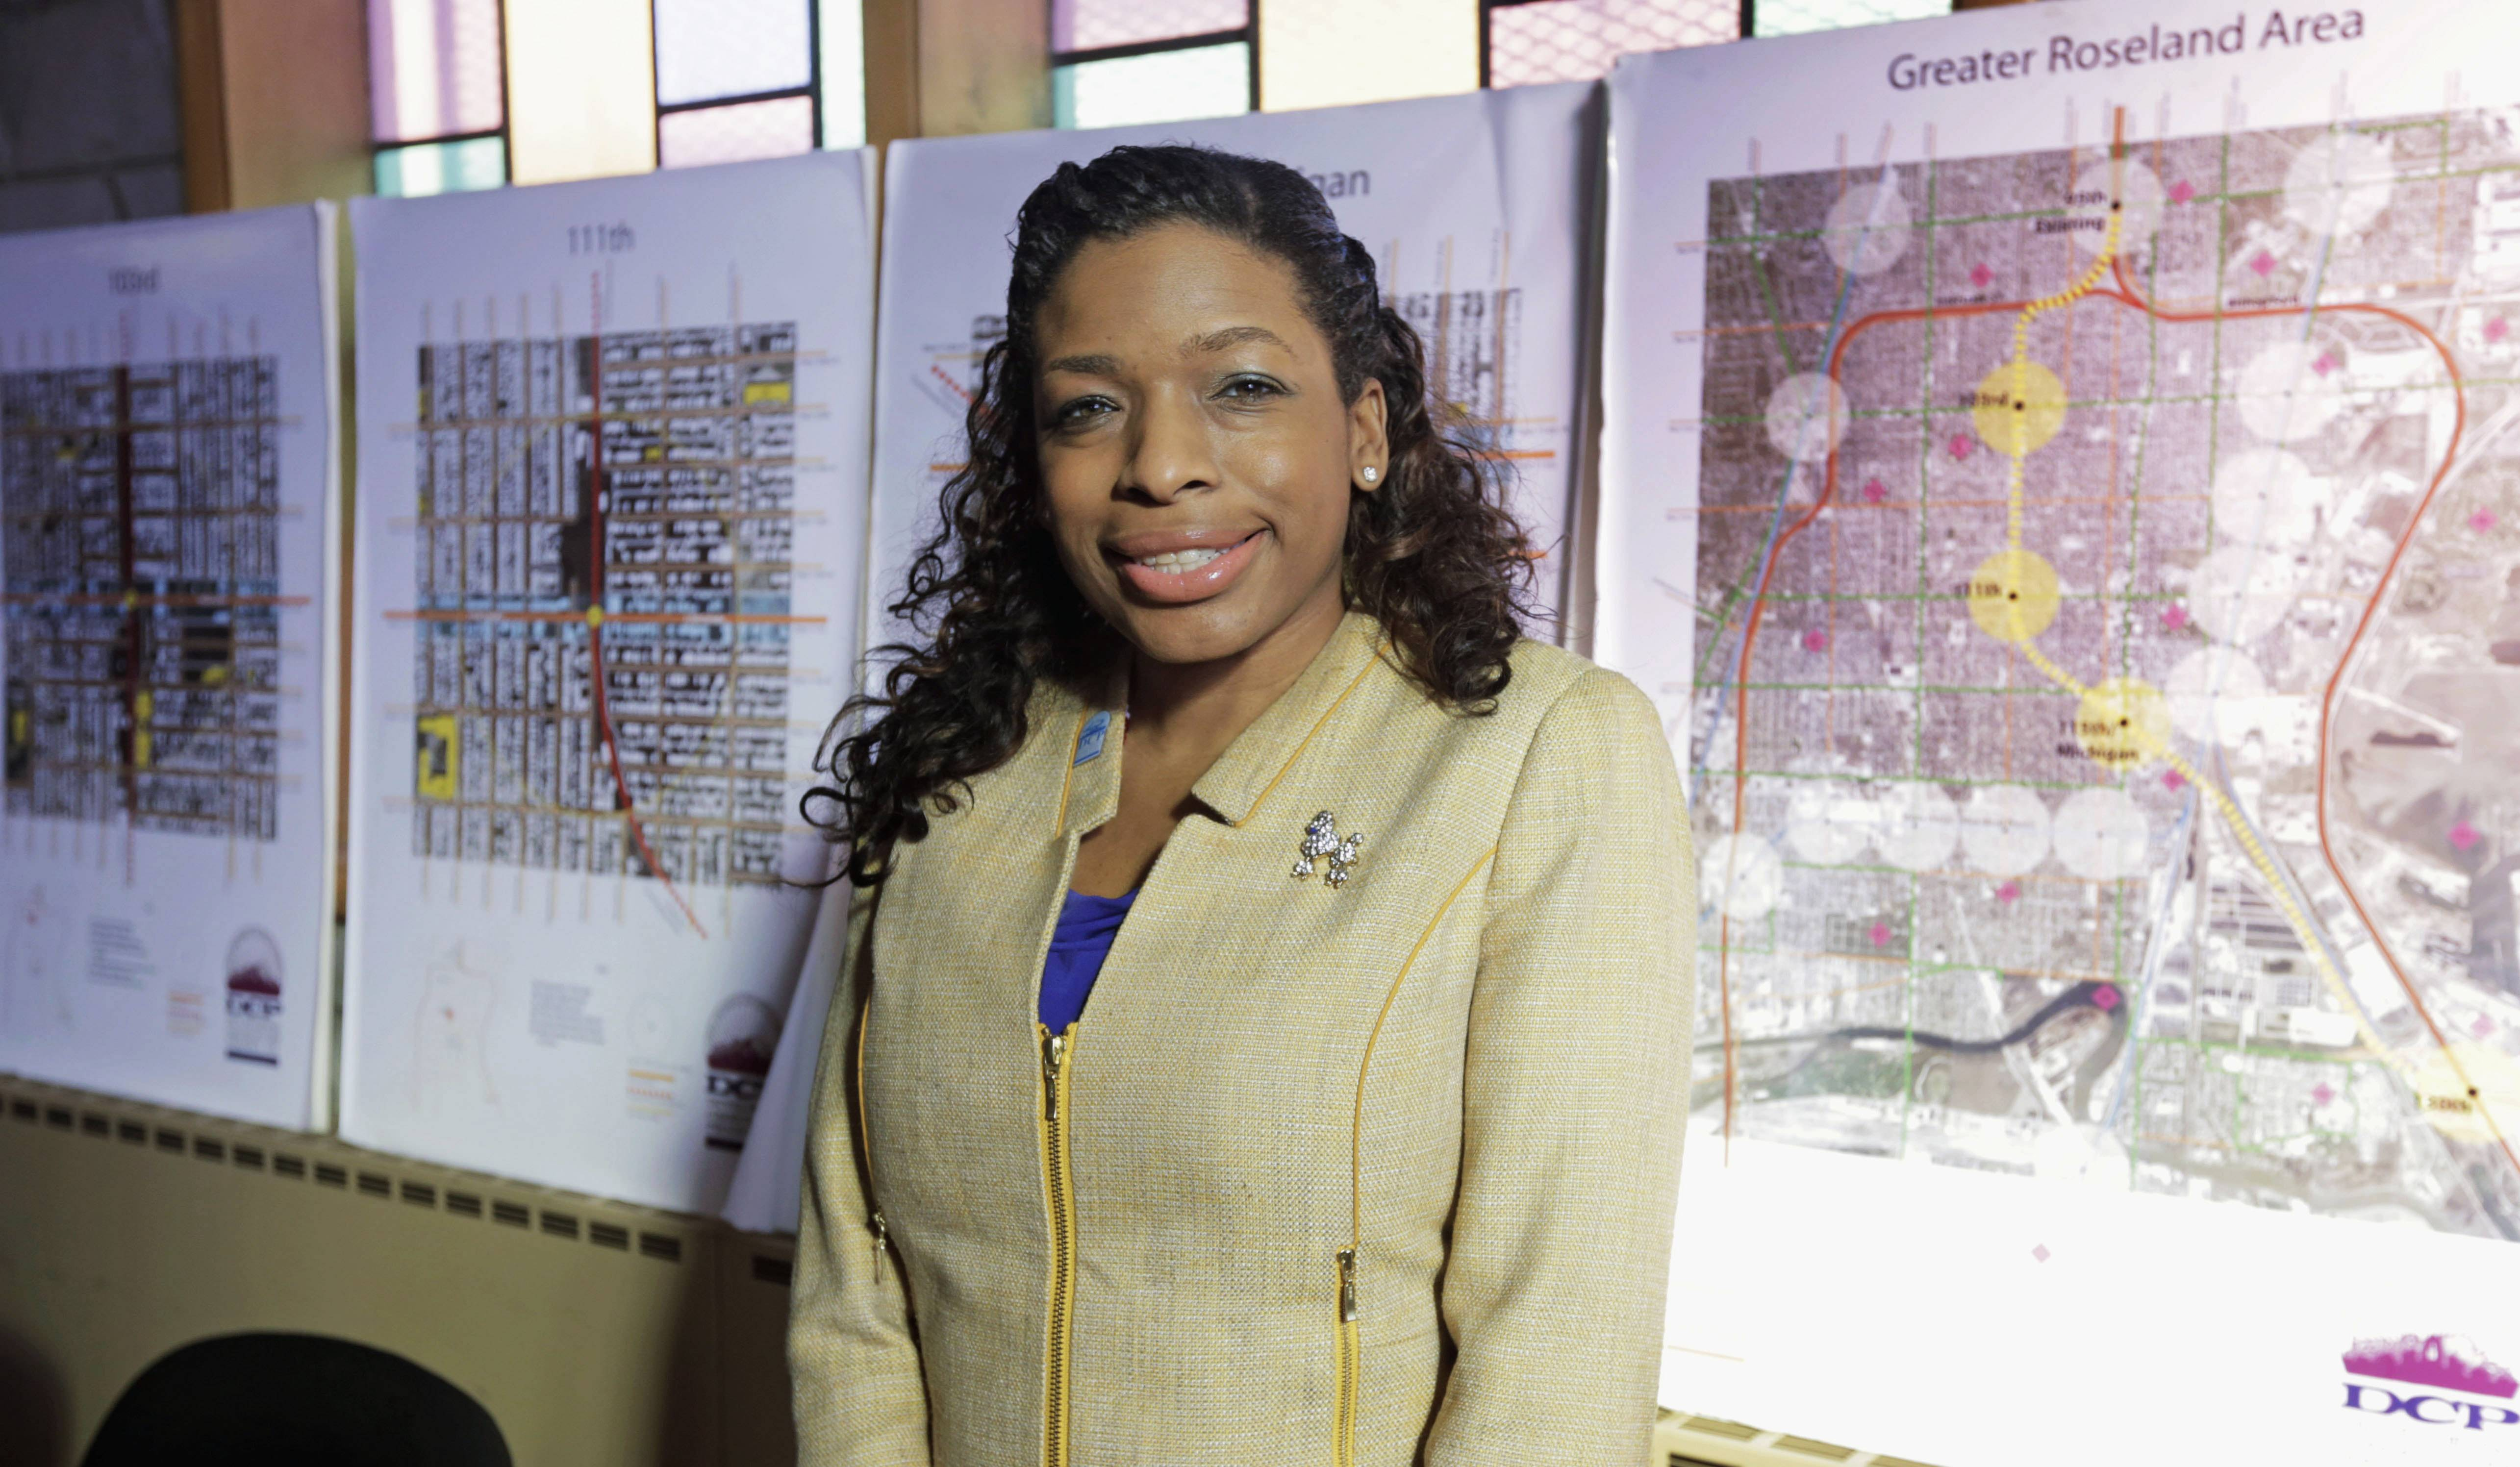 Tiffany Hightower is part of a group trying to bring a Barack Obama presidential library to Chicago State University. She believes the library would transform the area and give young people a link to the world beyond their violence-plagued streets.